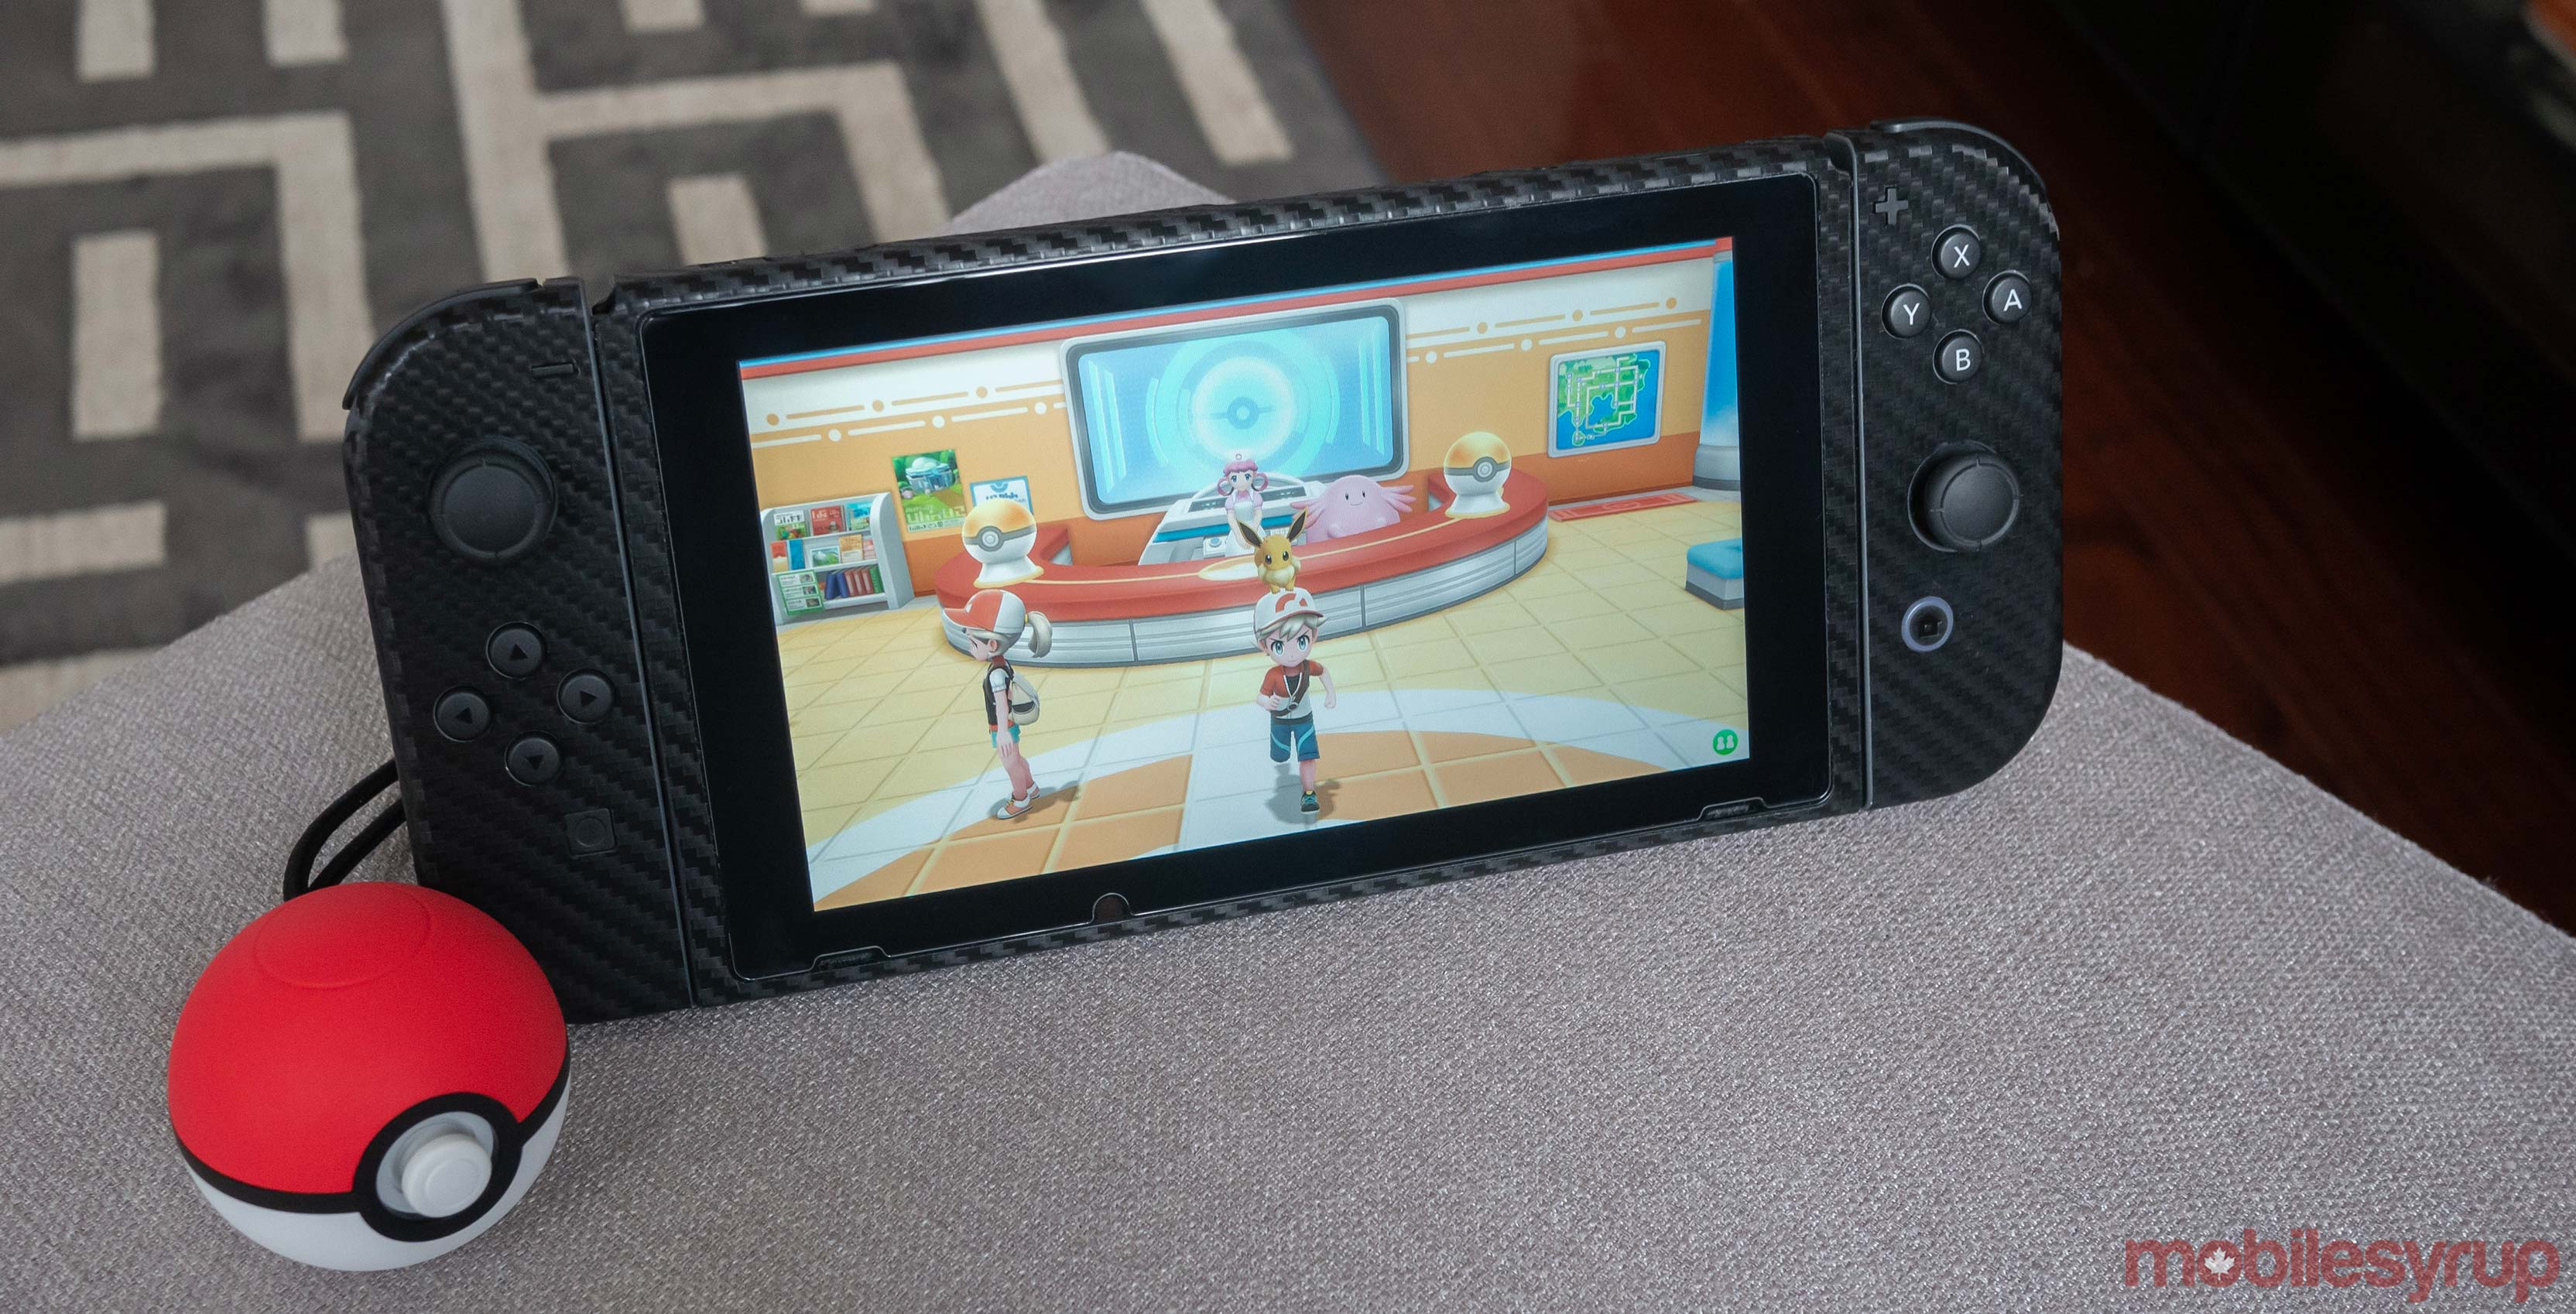 Pokemon Direct Taking Place Tomorrow Morning, Likely Revealing Generation 8